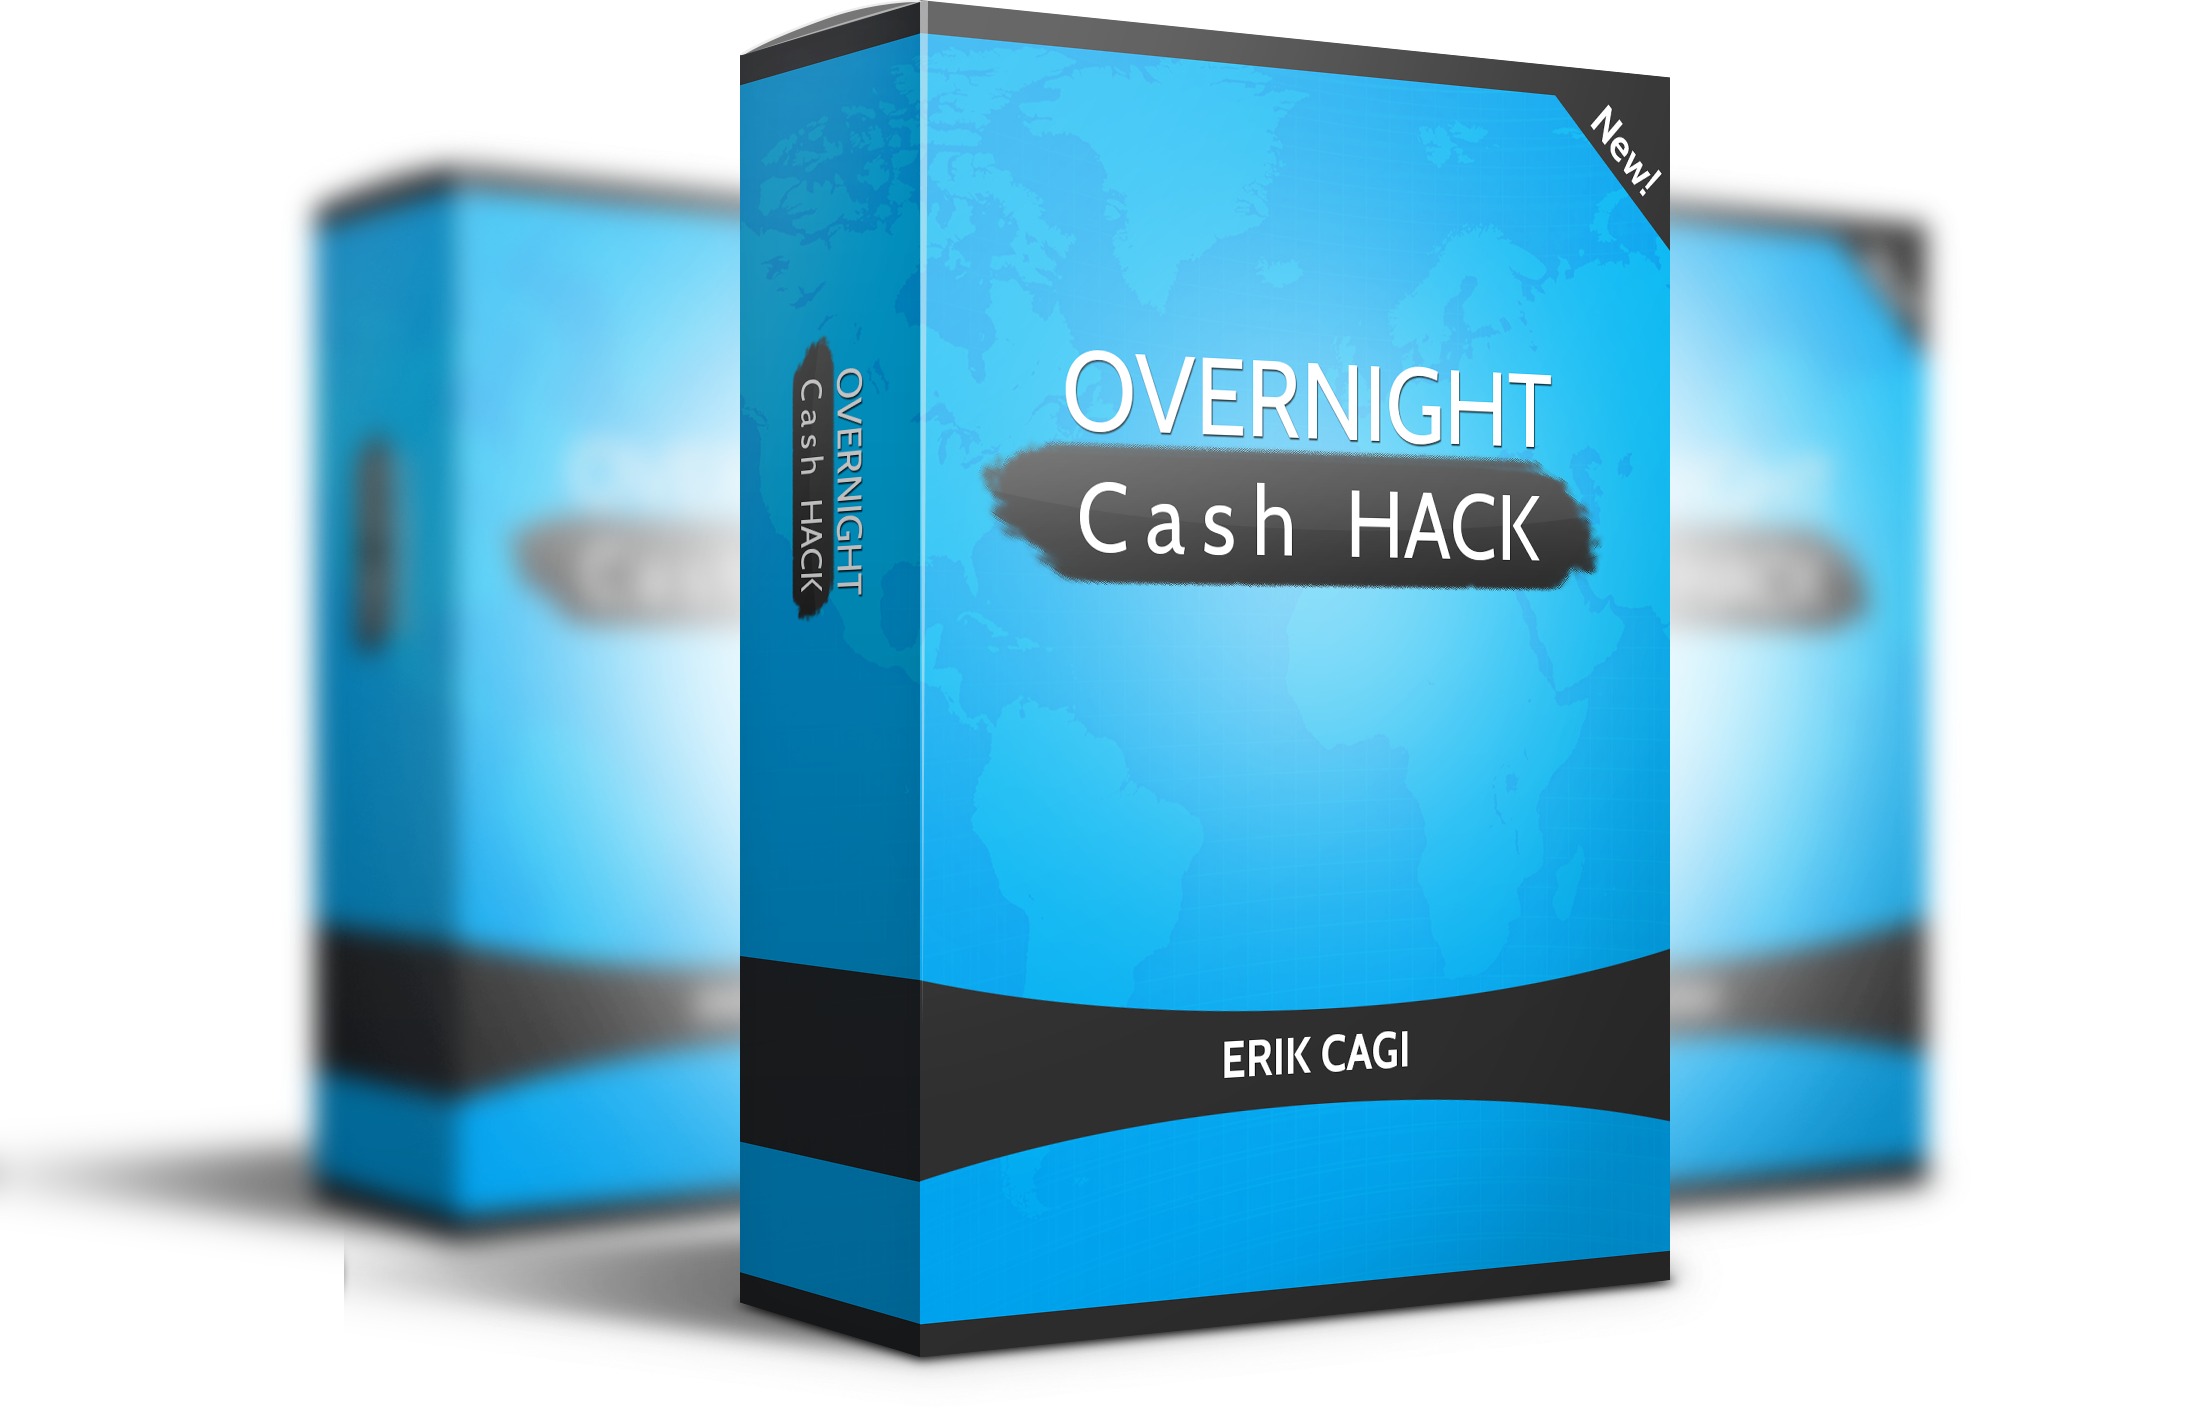 Overnight Cash Hack Review – GET THE BONUSES: Generate $67.13 Overnight With 27 Minutes Of Easy Work Using A Simple Hack That 99% Of People Ignore